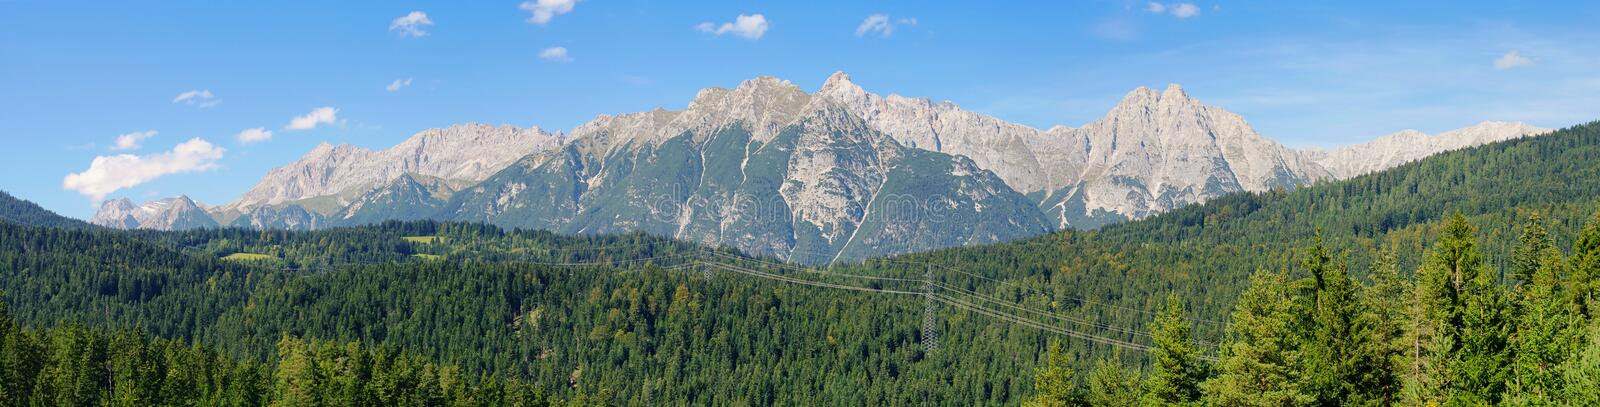 Download Wettersteingebirge Alps stock image. Image of bavaria - 23875045